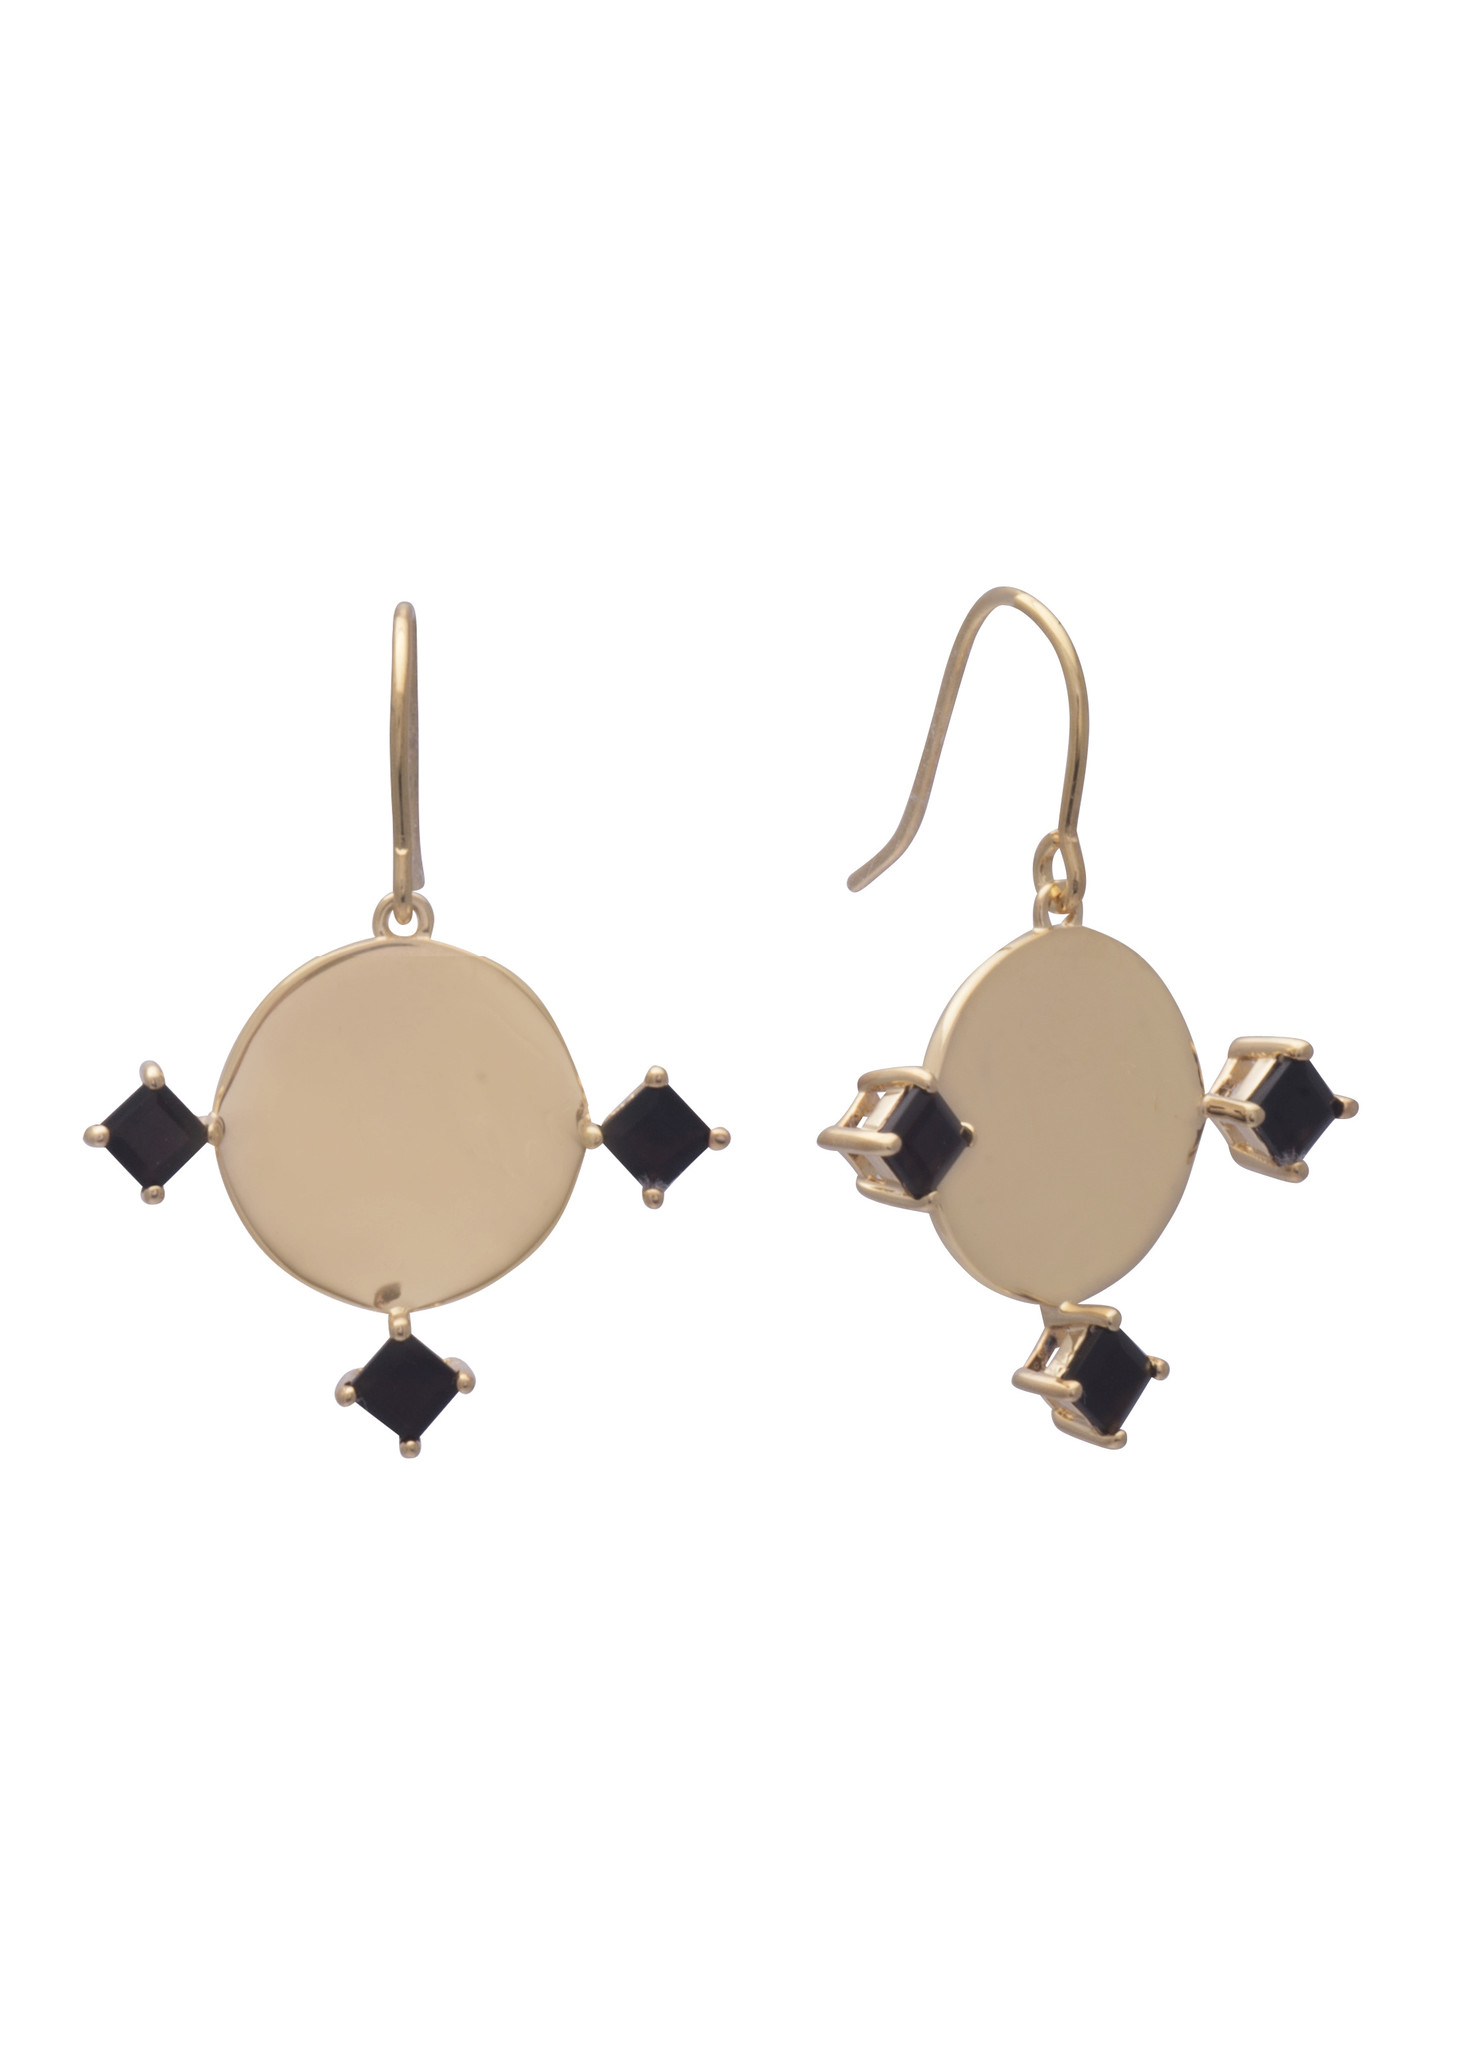 Sarah Mulder Jewelry Boucle d'oreille Imperial